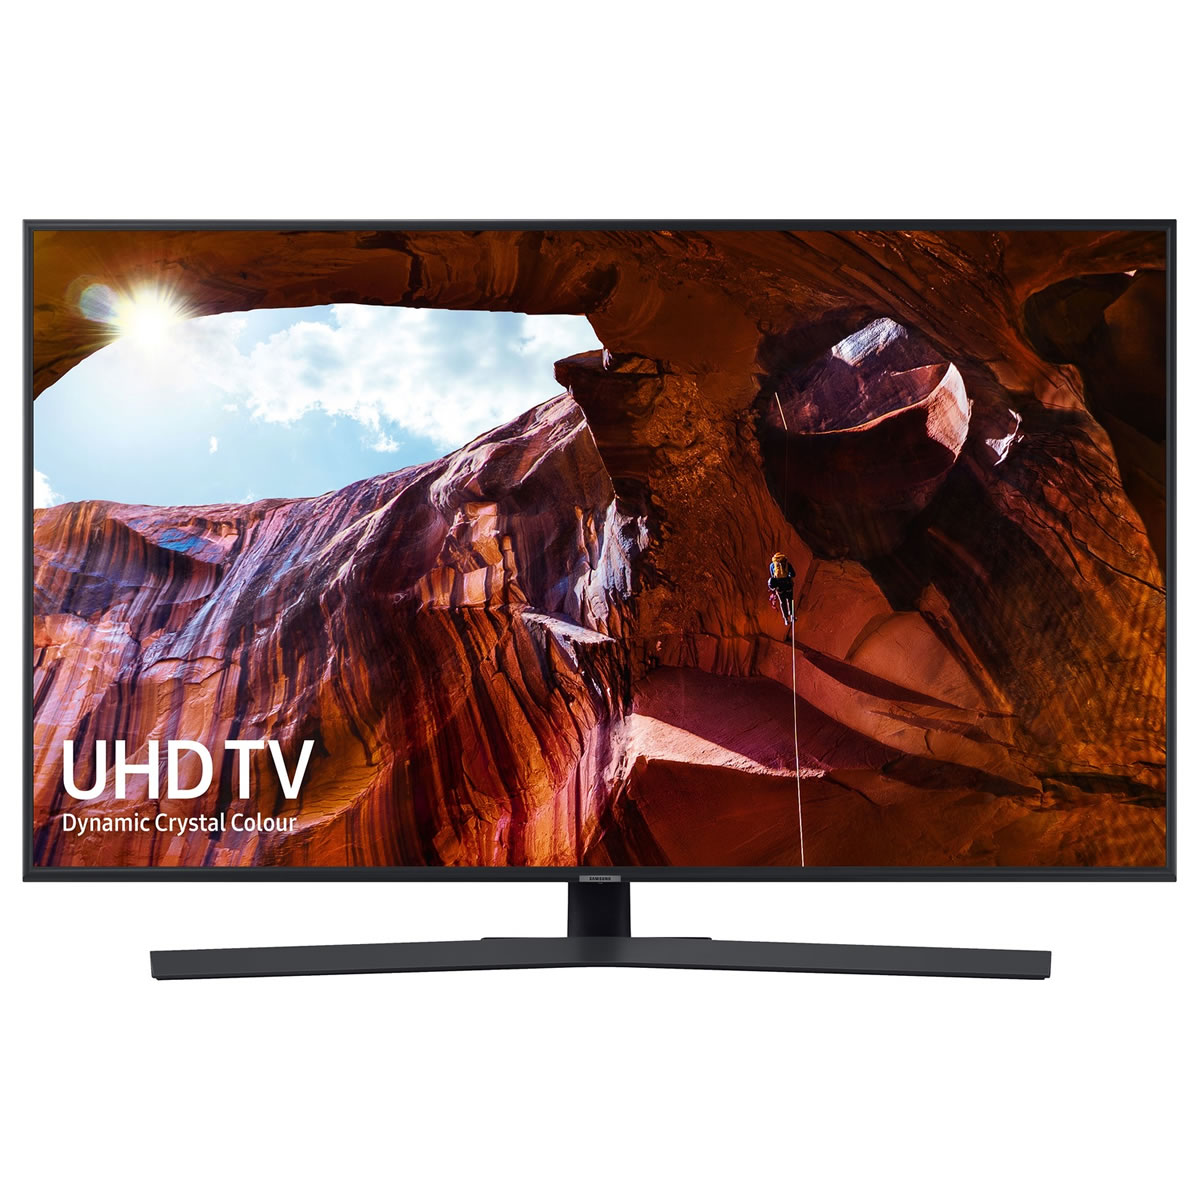 Image of 55inch UHD 4K LED SMART TV HDR Bixby TV Plus Black